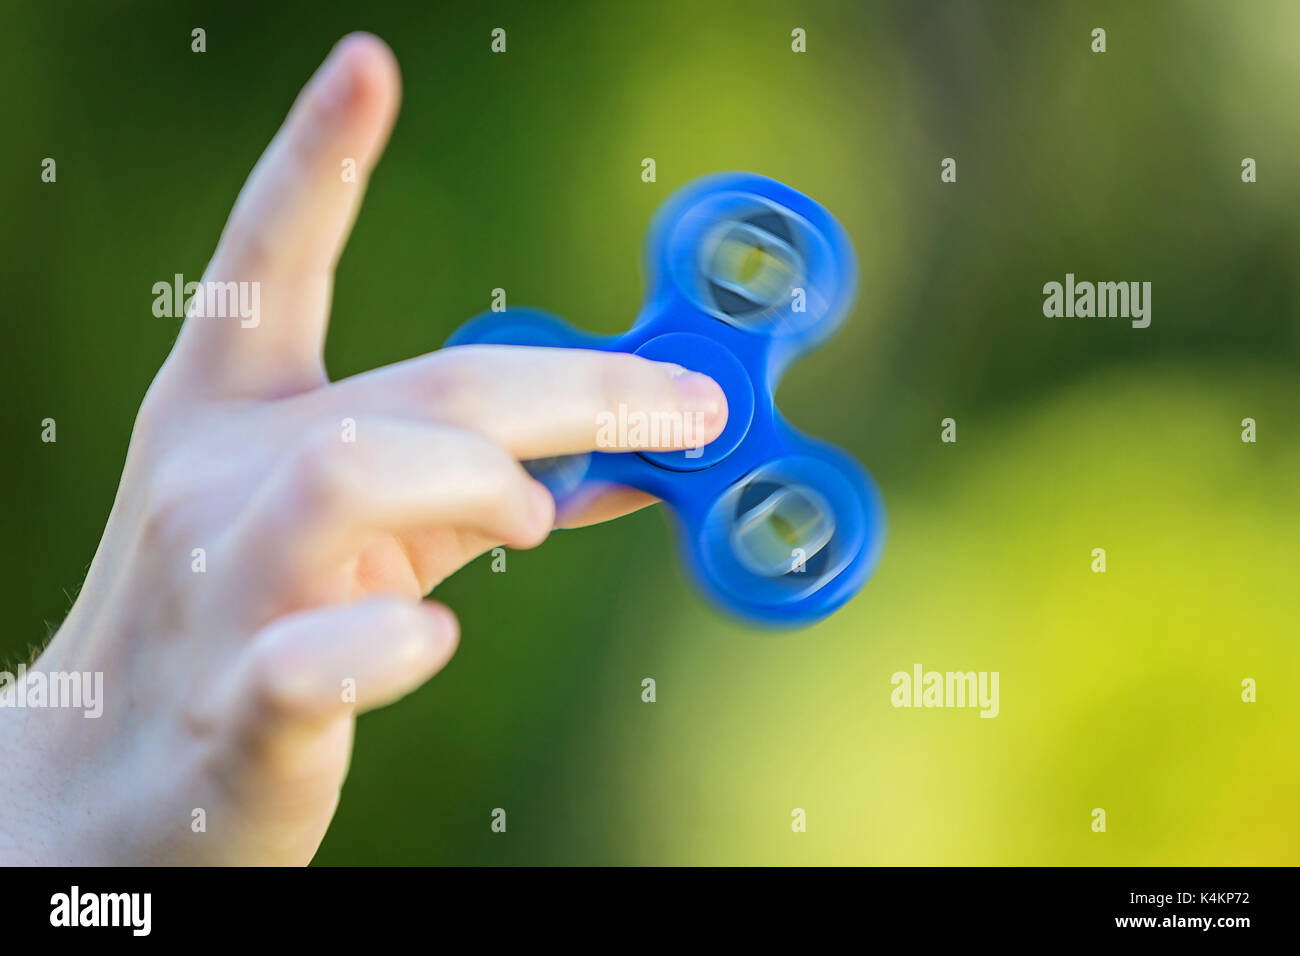 Girl's hand holding a spinning fidget spinner in her hand, spinning them on her index finger - Stock Image